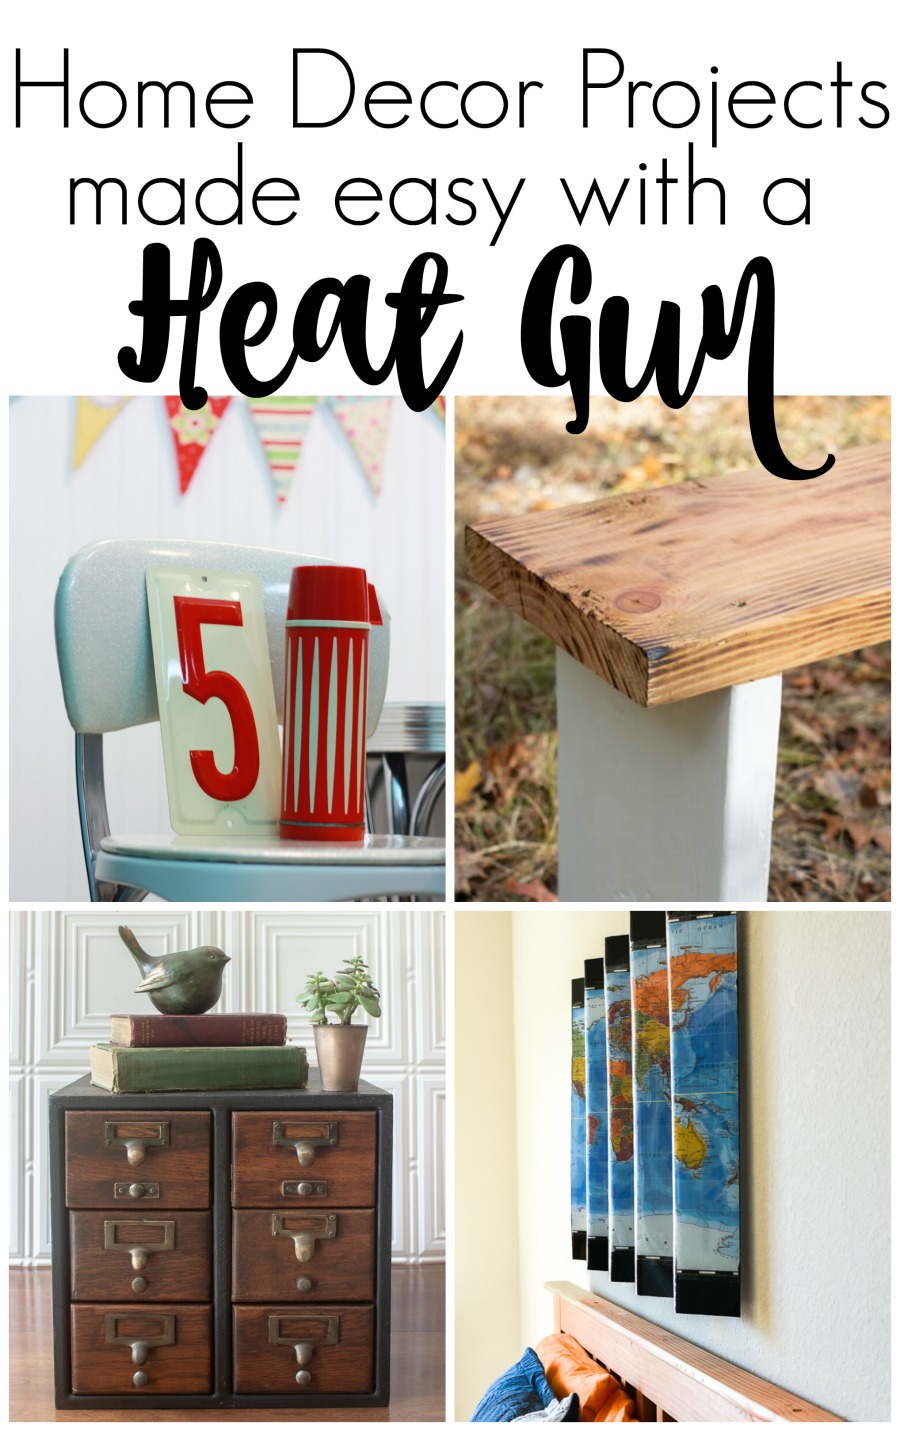 Home Decor Projects made easy with a Heat Gun